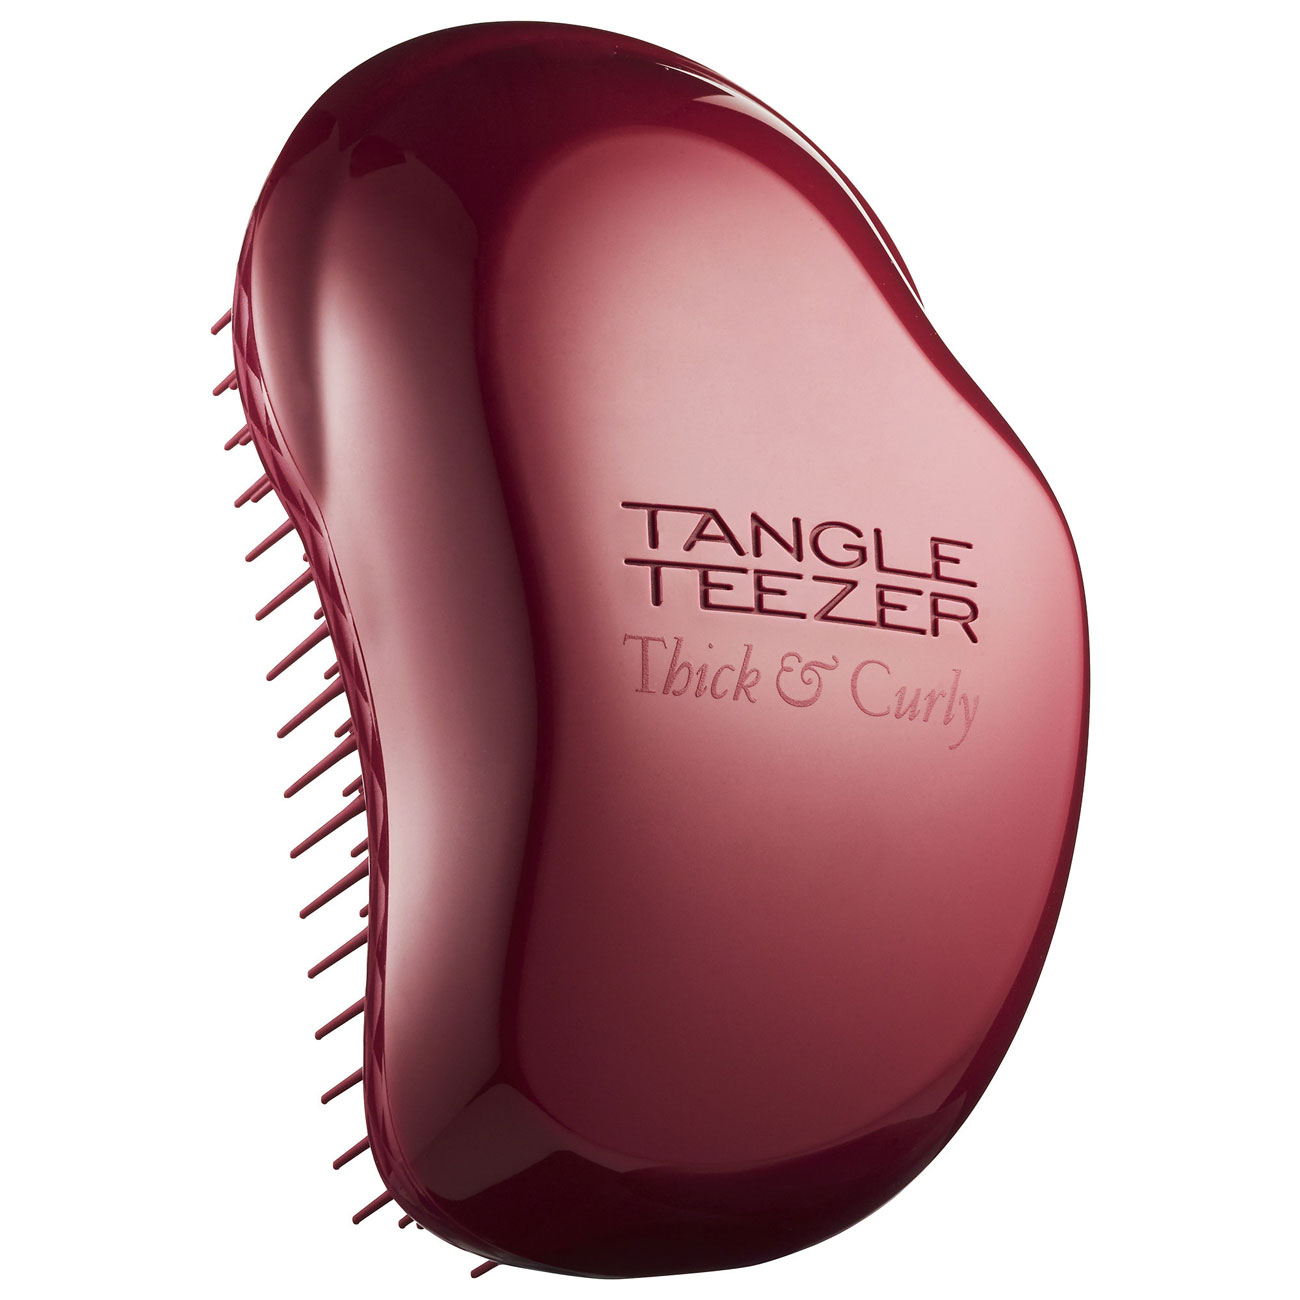 Tangle TEezer: Gifts for Curly Hair